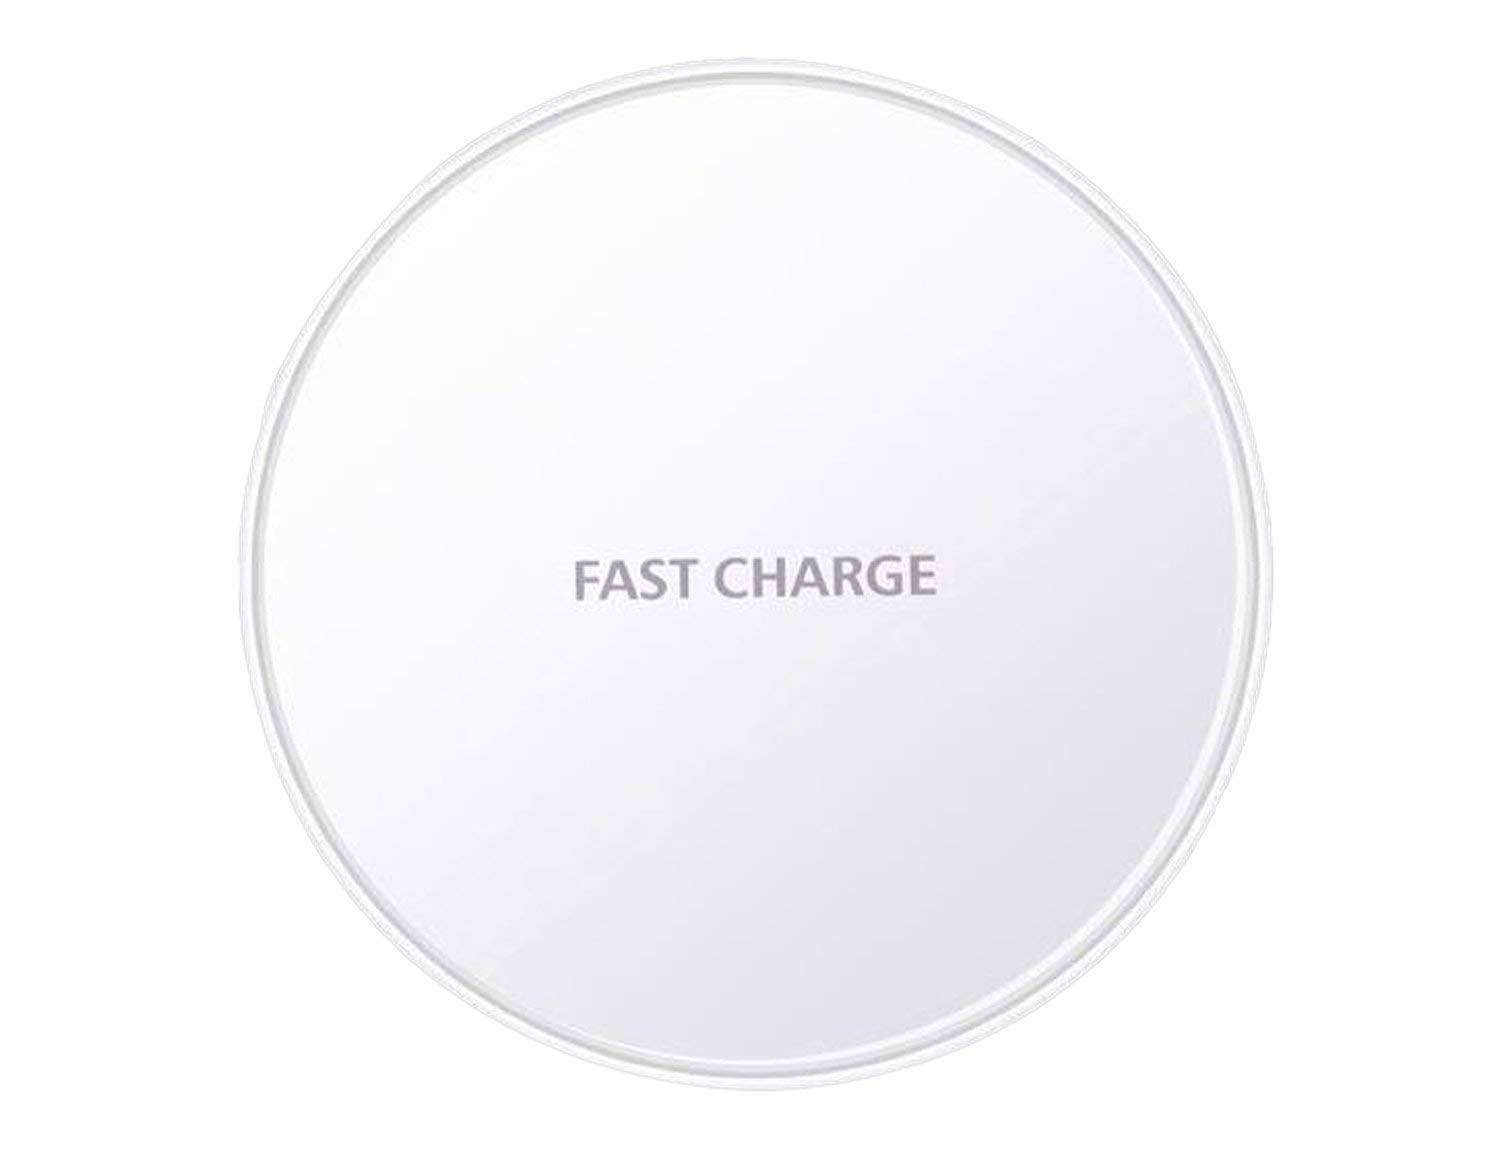 KUPPET 10W Wireless Charger, Qi-Certified Wireless Charging Pad, PowerPort Wireless 10 for iPhone 8/8 Plus, iPhone X, Samsung Galaxy S9/S9+ and More, Provides Fast-Charging for Galaxy S8/S8+/S7